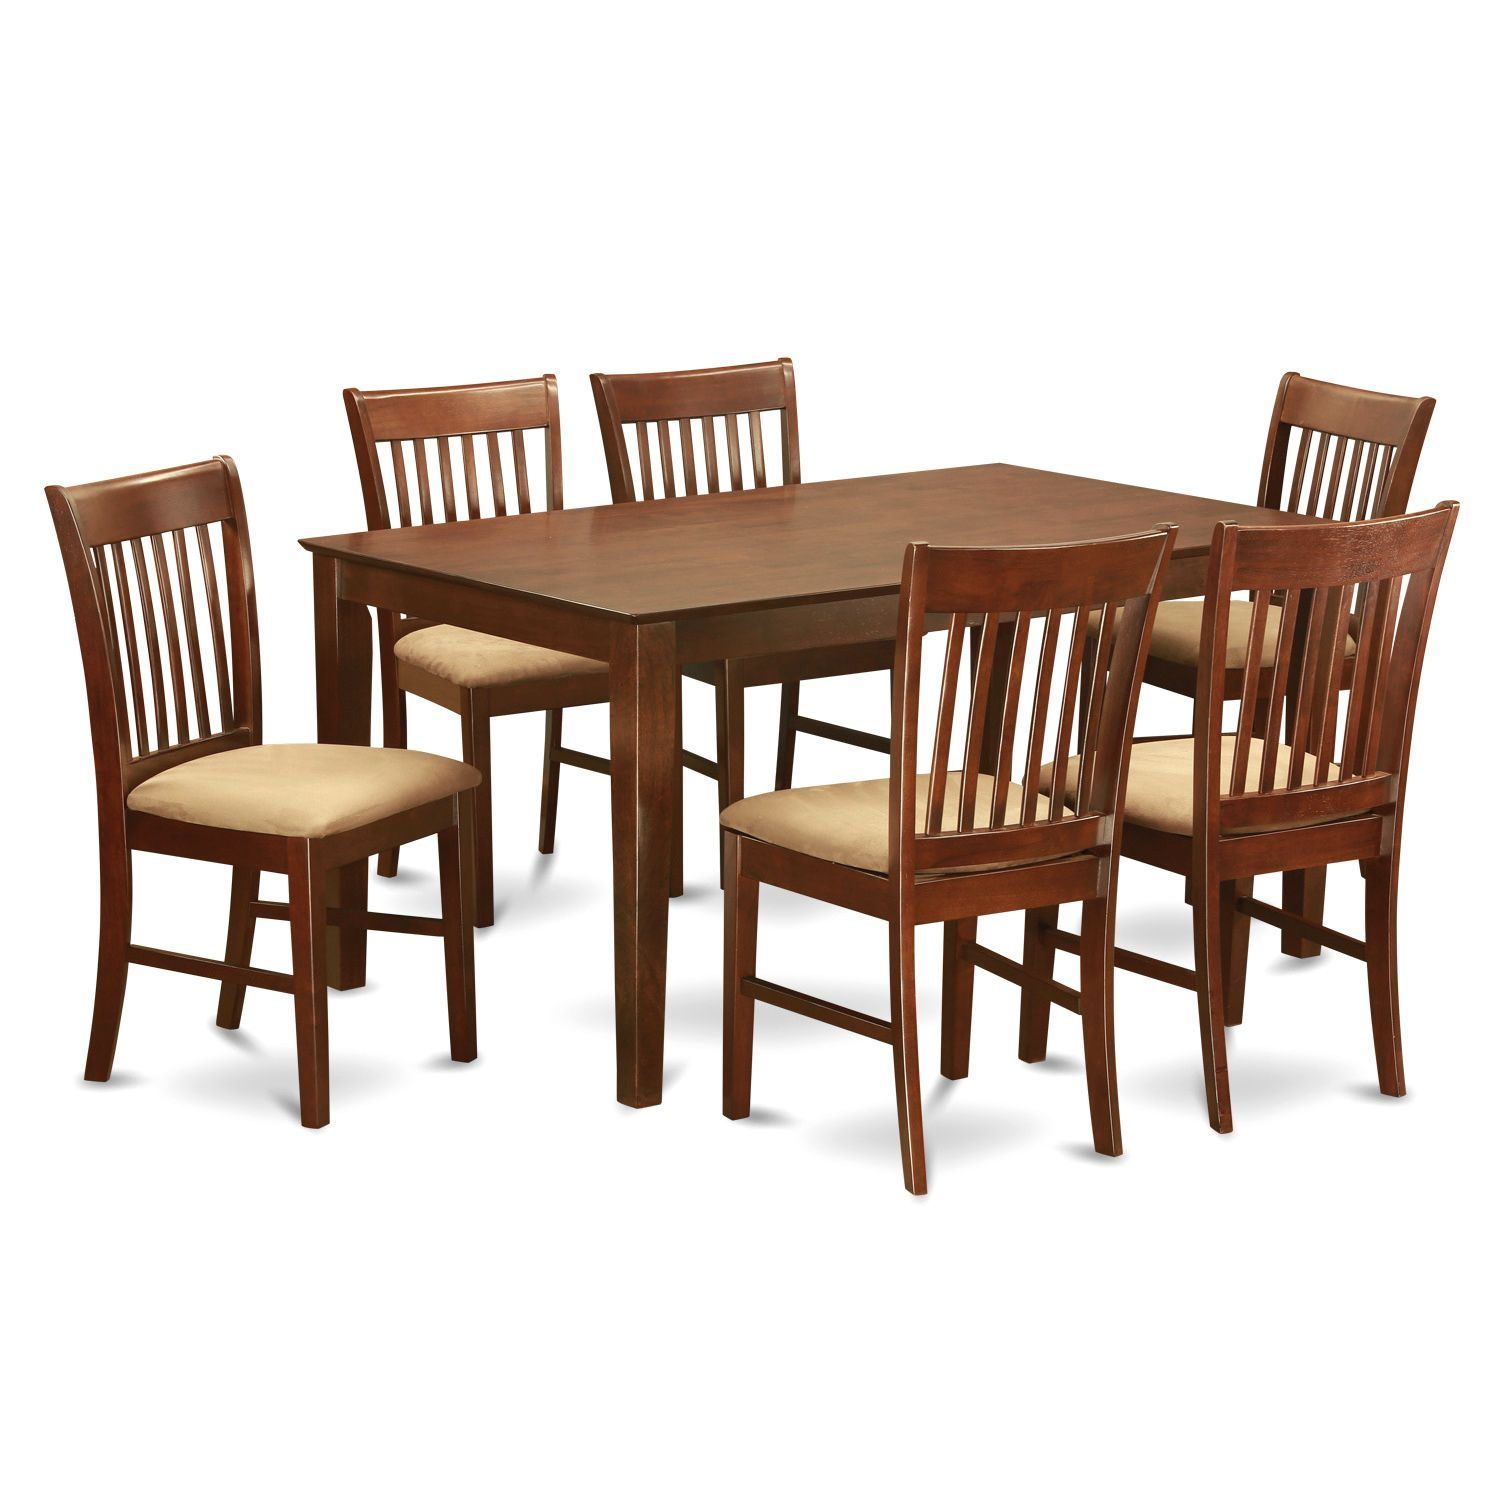 Cano7Mah Mahogany Rubberwood 7Piece Dining Room Table Set Wood Magnificent Dining Room Sets Online Design Inspiration